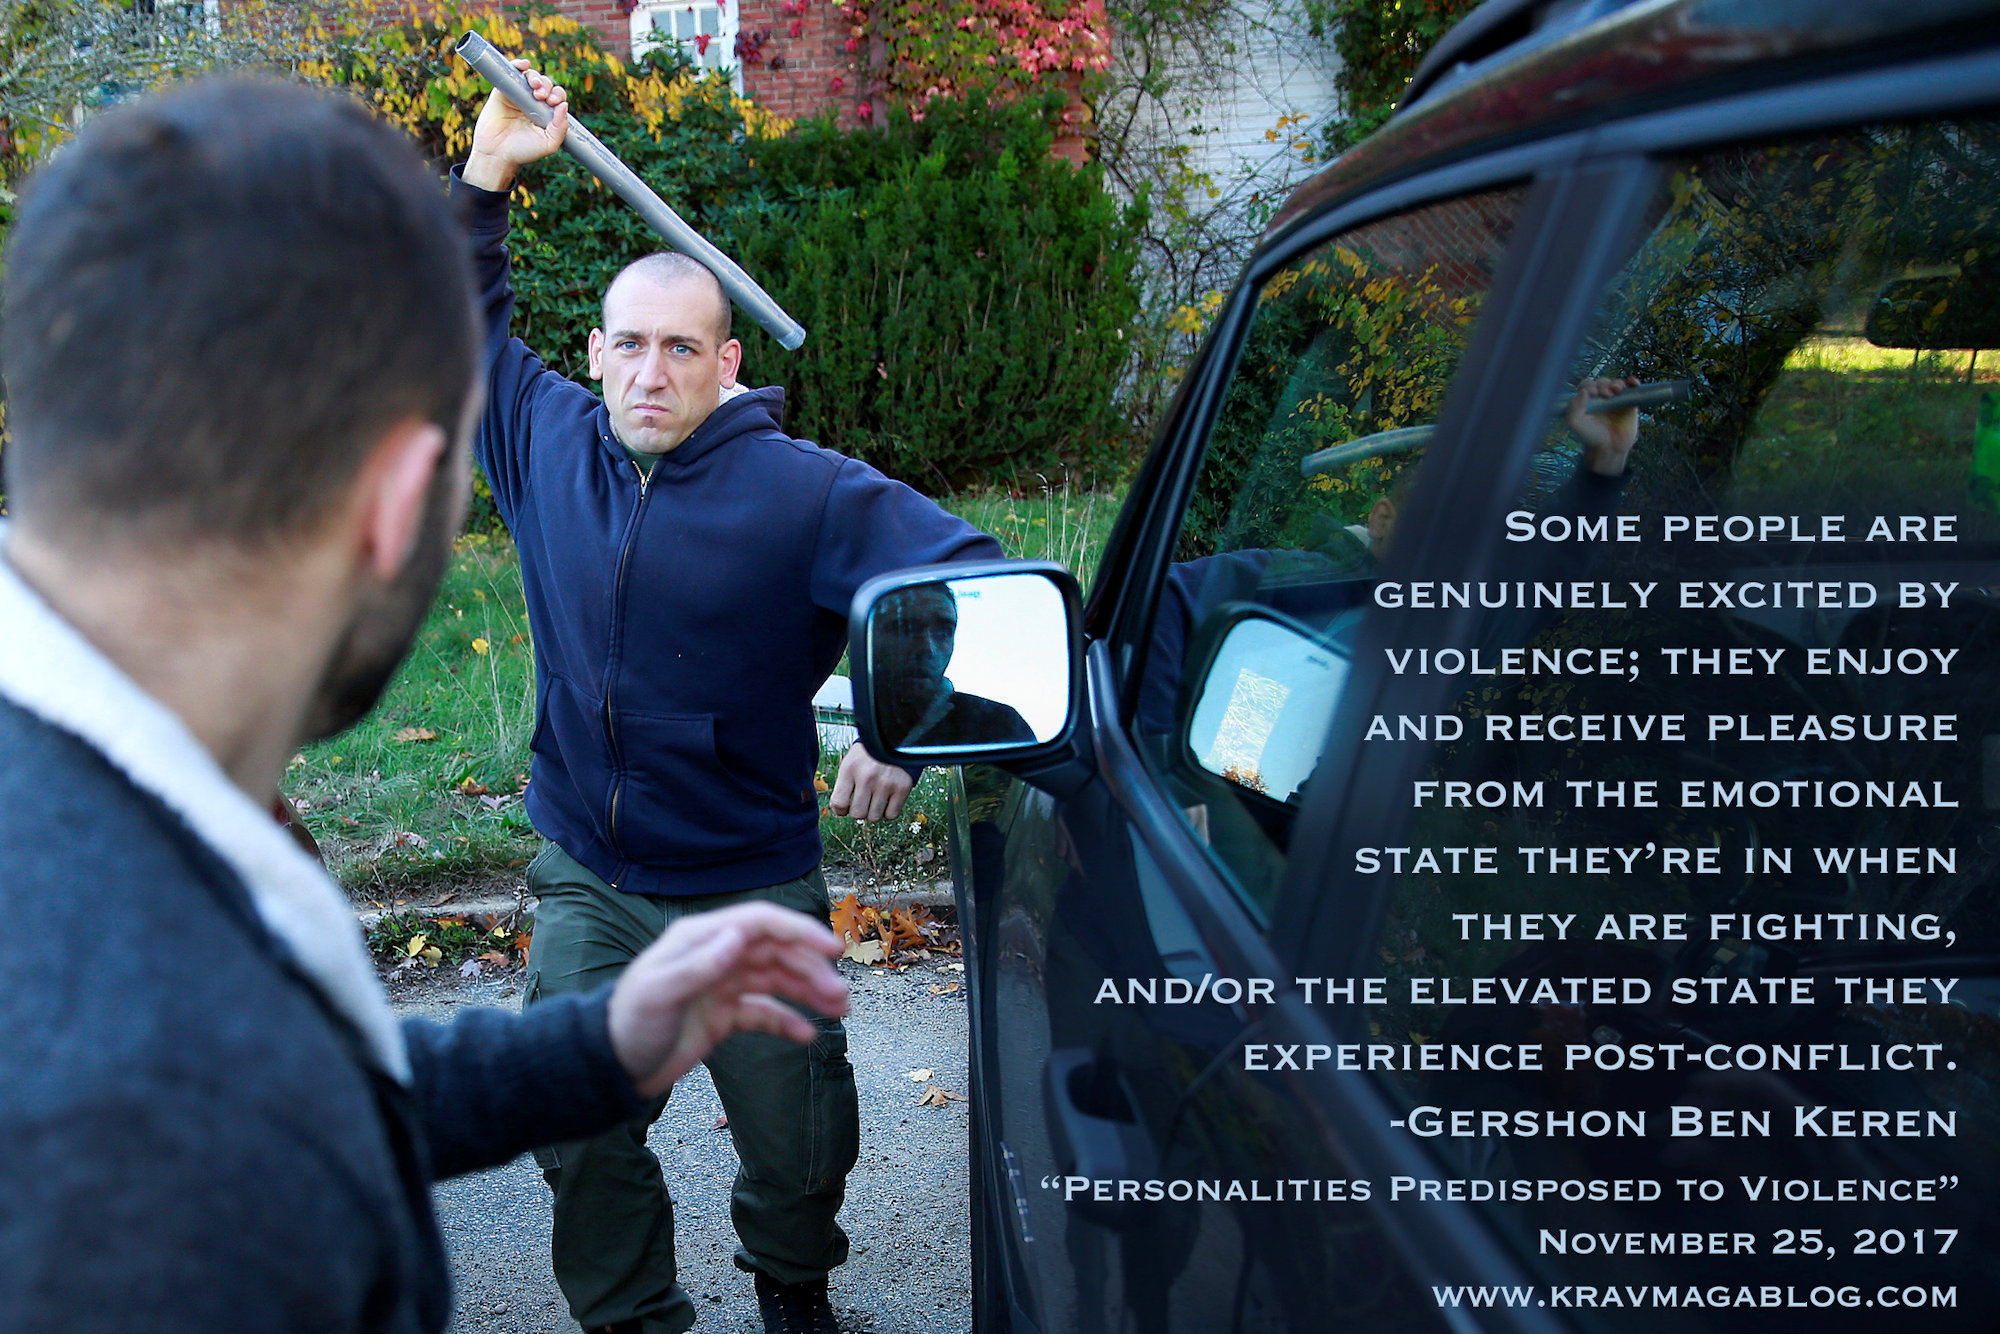 Personalities Predisposed to Violence